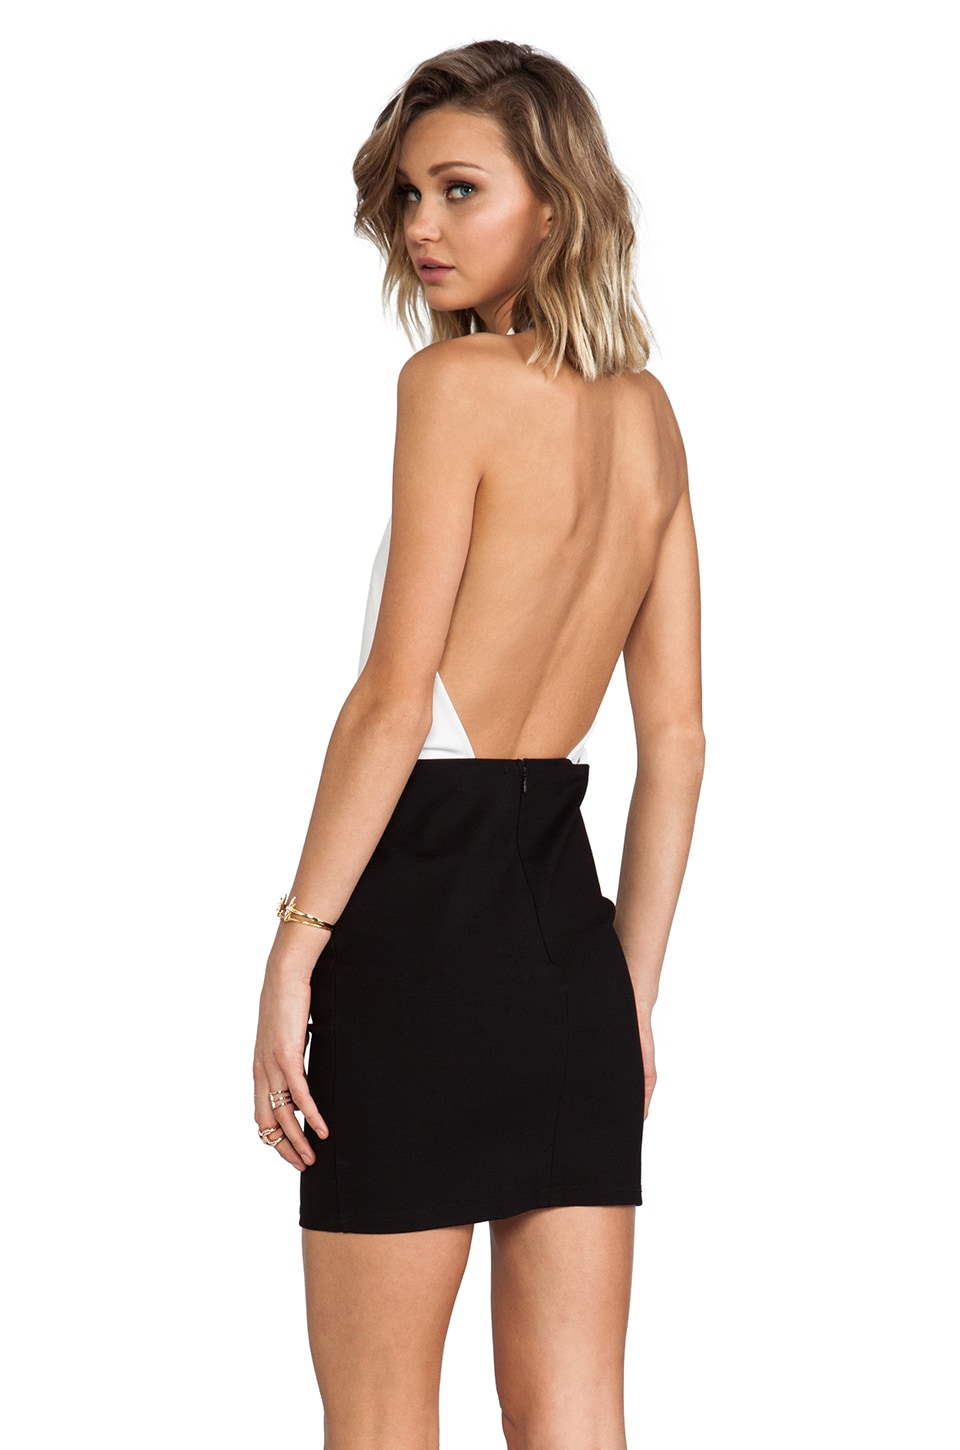 MINKPINK House Of Cards Dress in Black & White